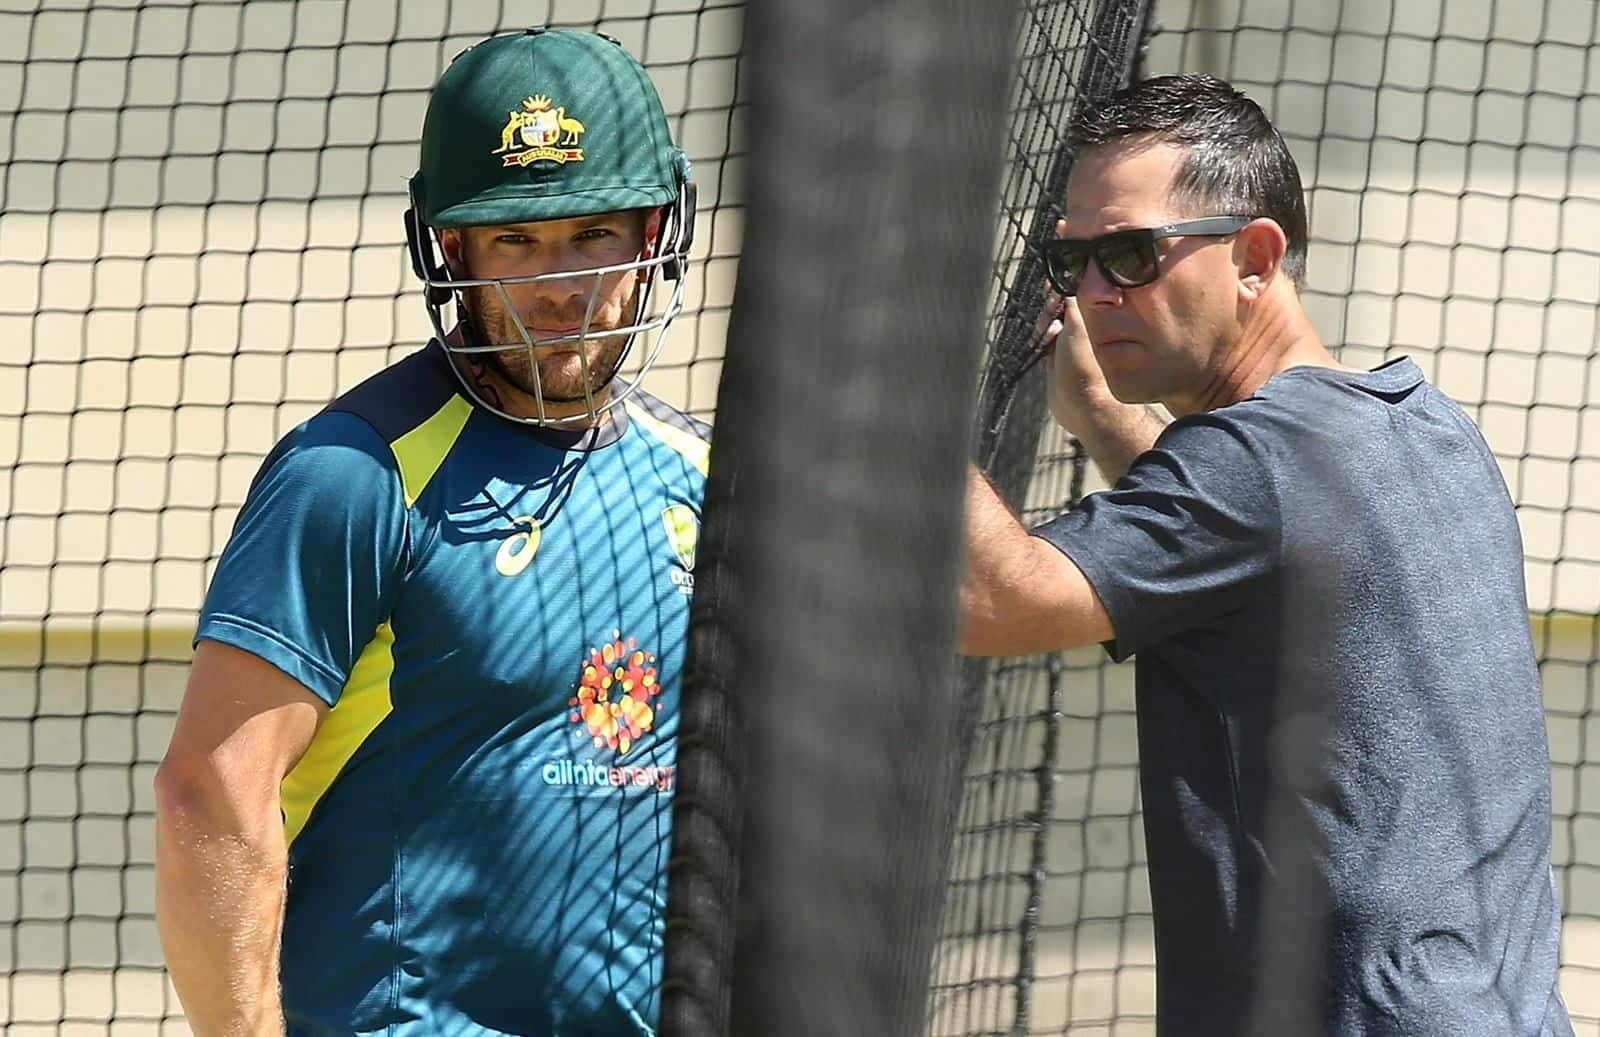 Finch and Ponting at the practice nets. Image Source: Cricket Australia.